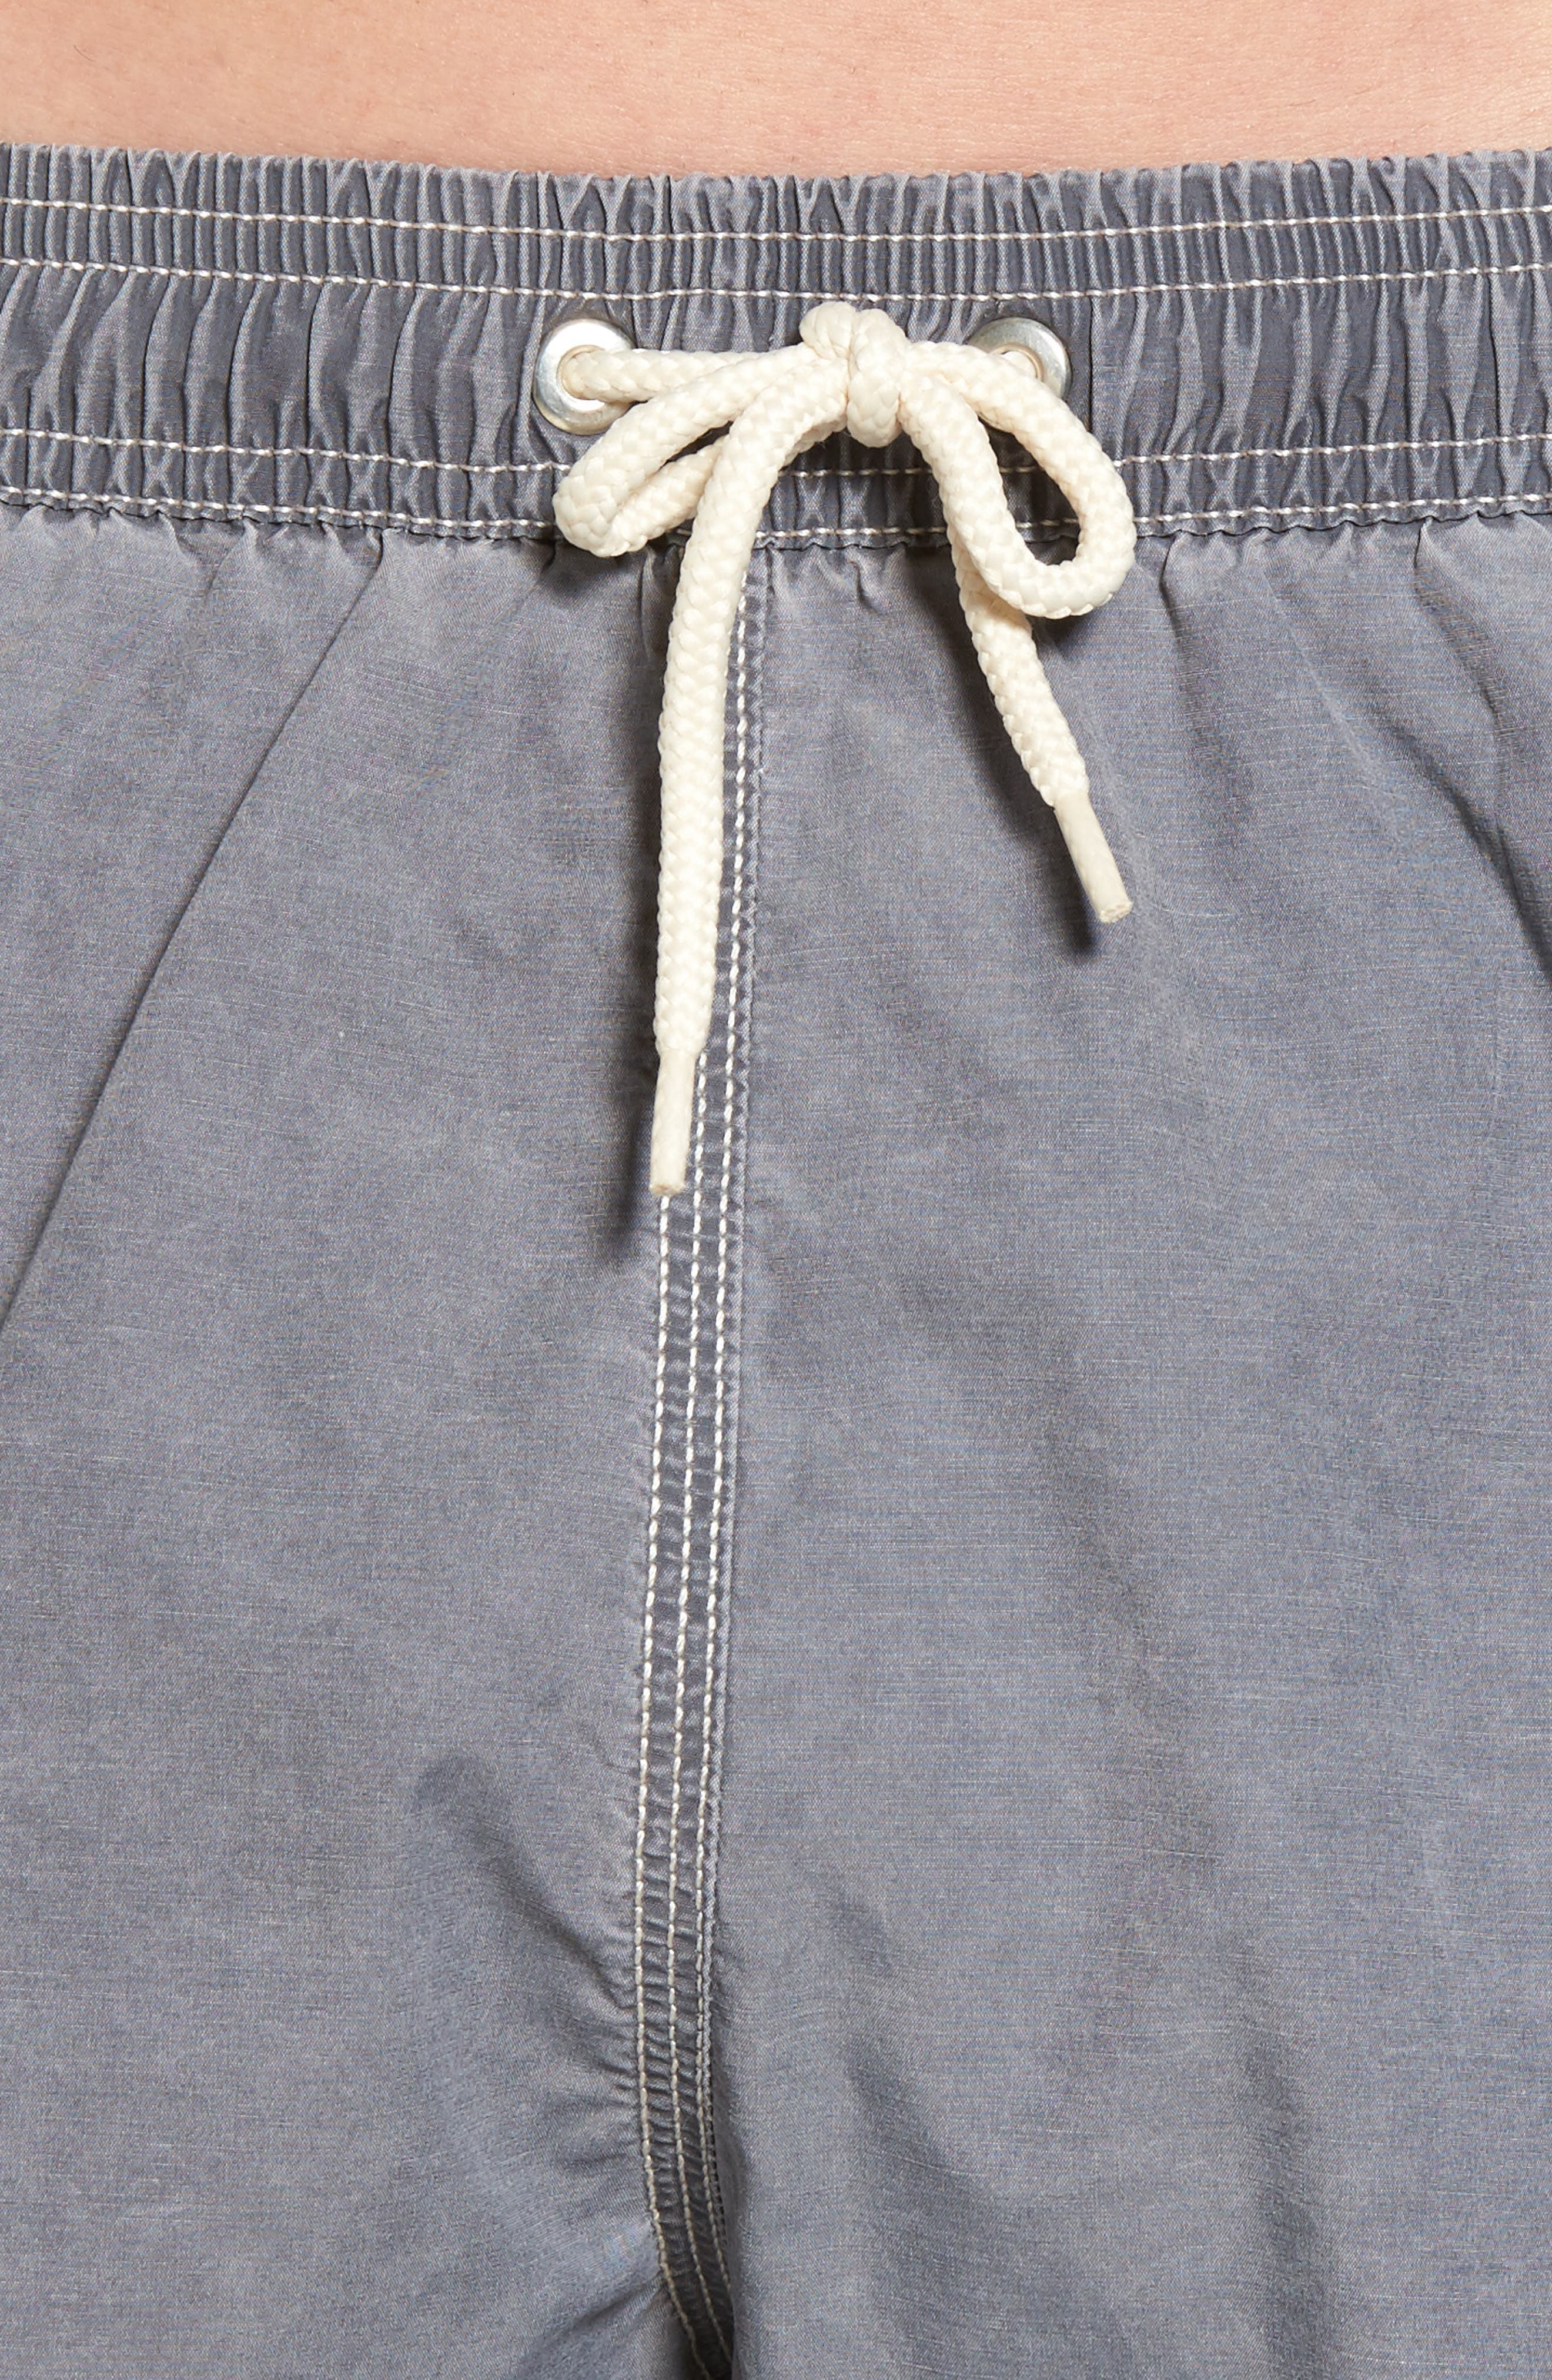 Victor Swim Trunks,                             Alternate thumbnail 4, color,                             021